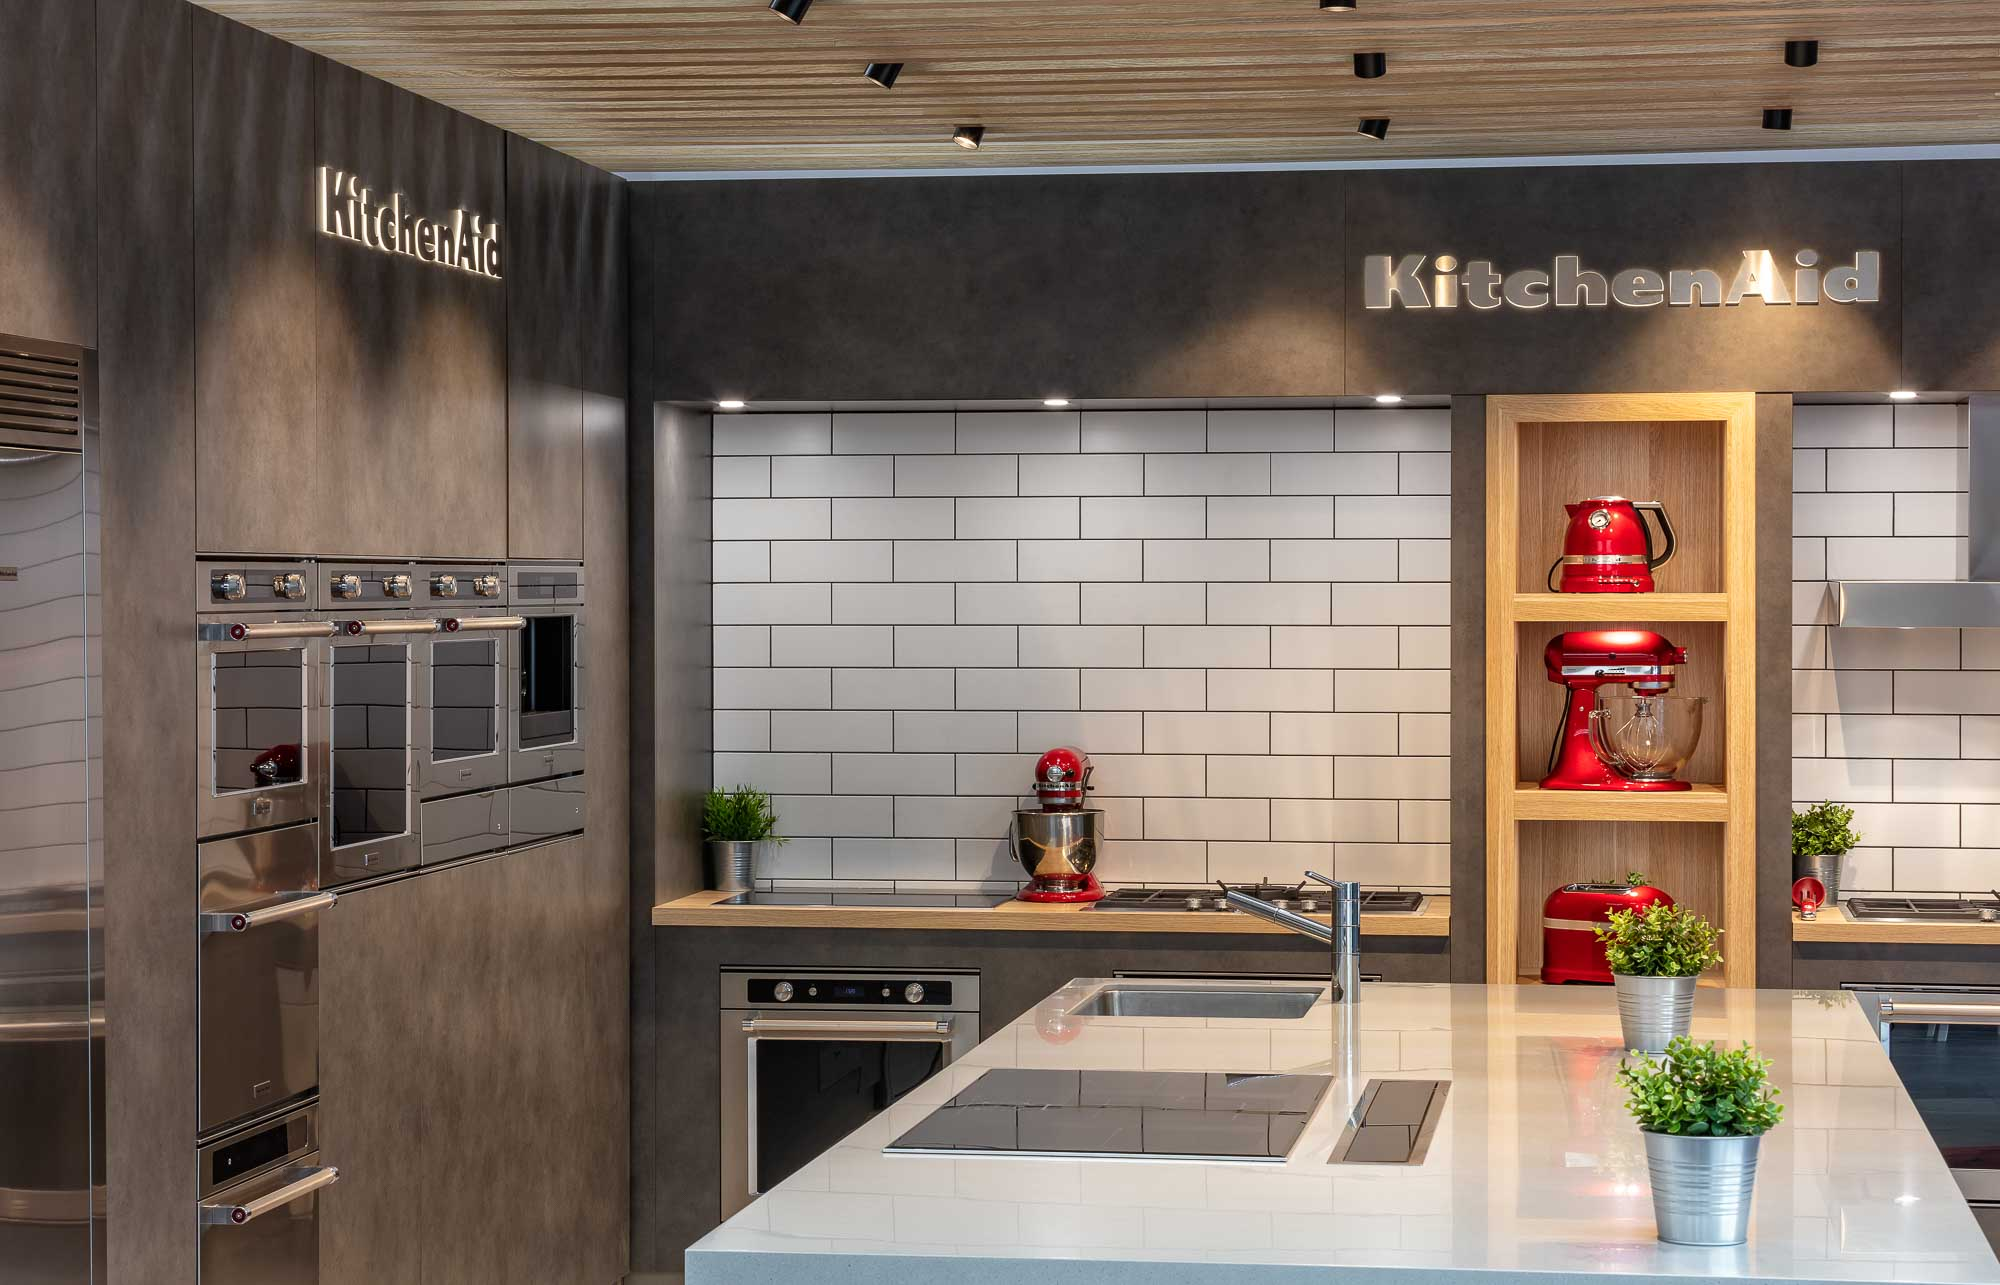 Kitchenaid display showroom - Commercial Photography